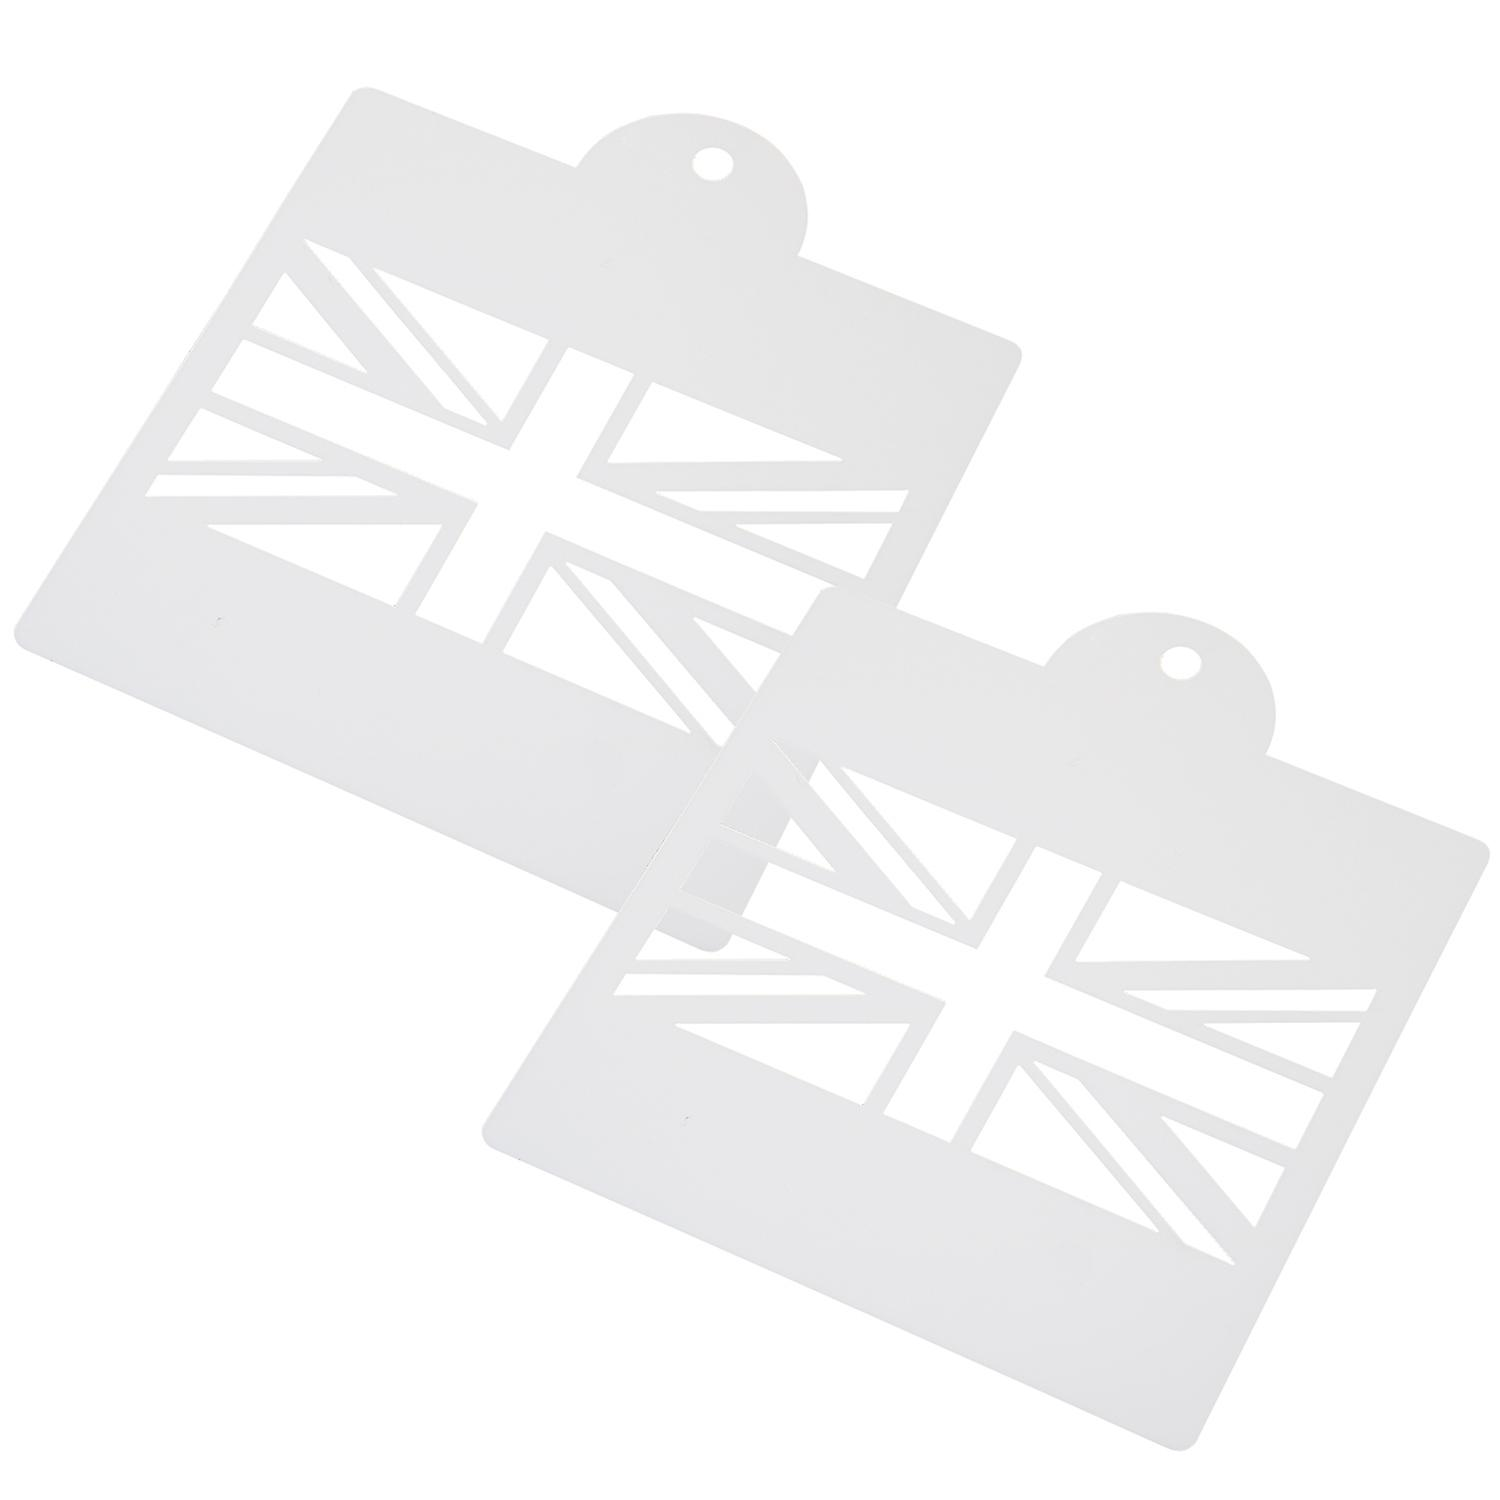 Union Jack Drawing Stencil Templates for Scrapbooking Card Making TRIXES